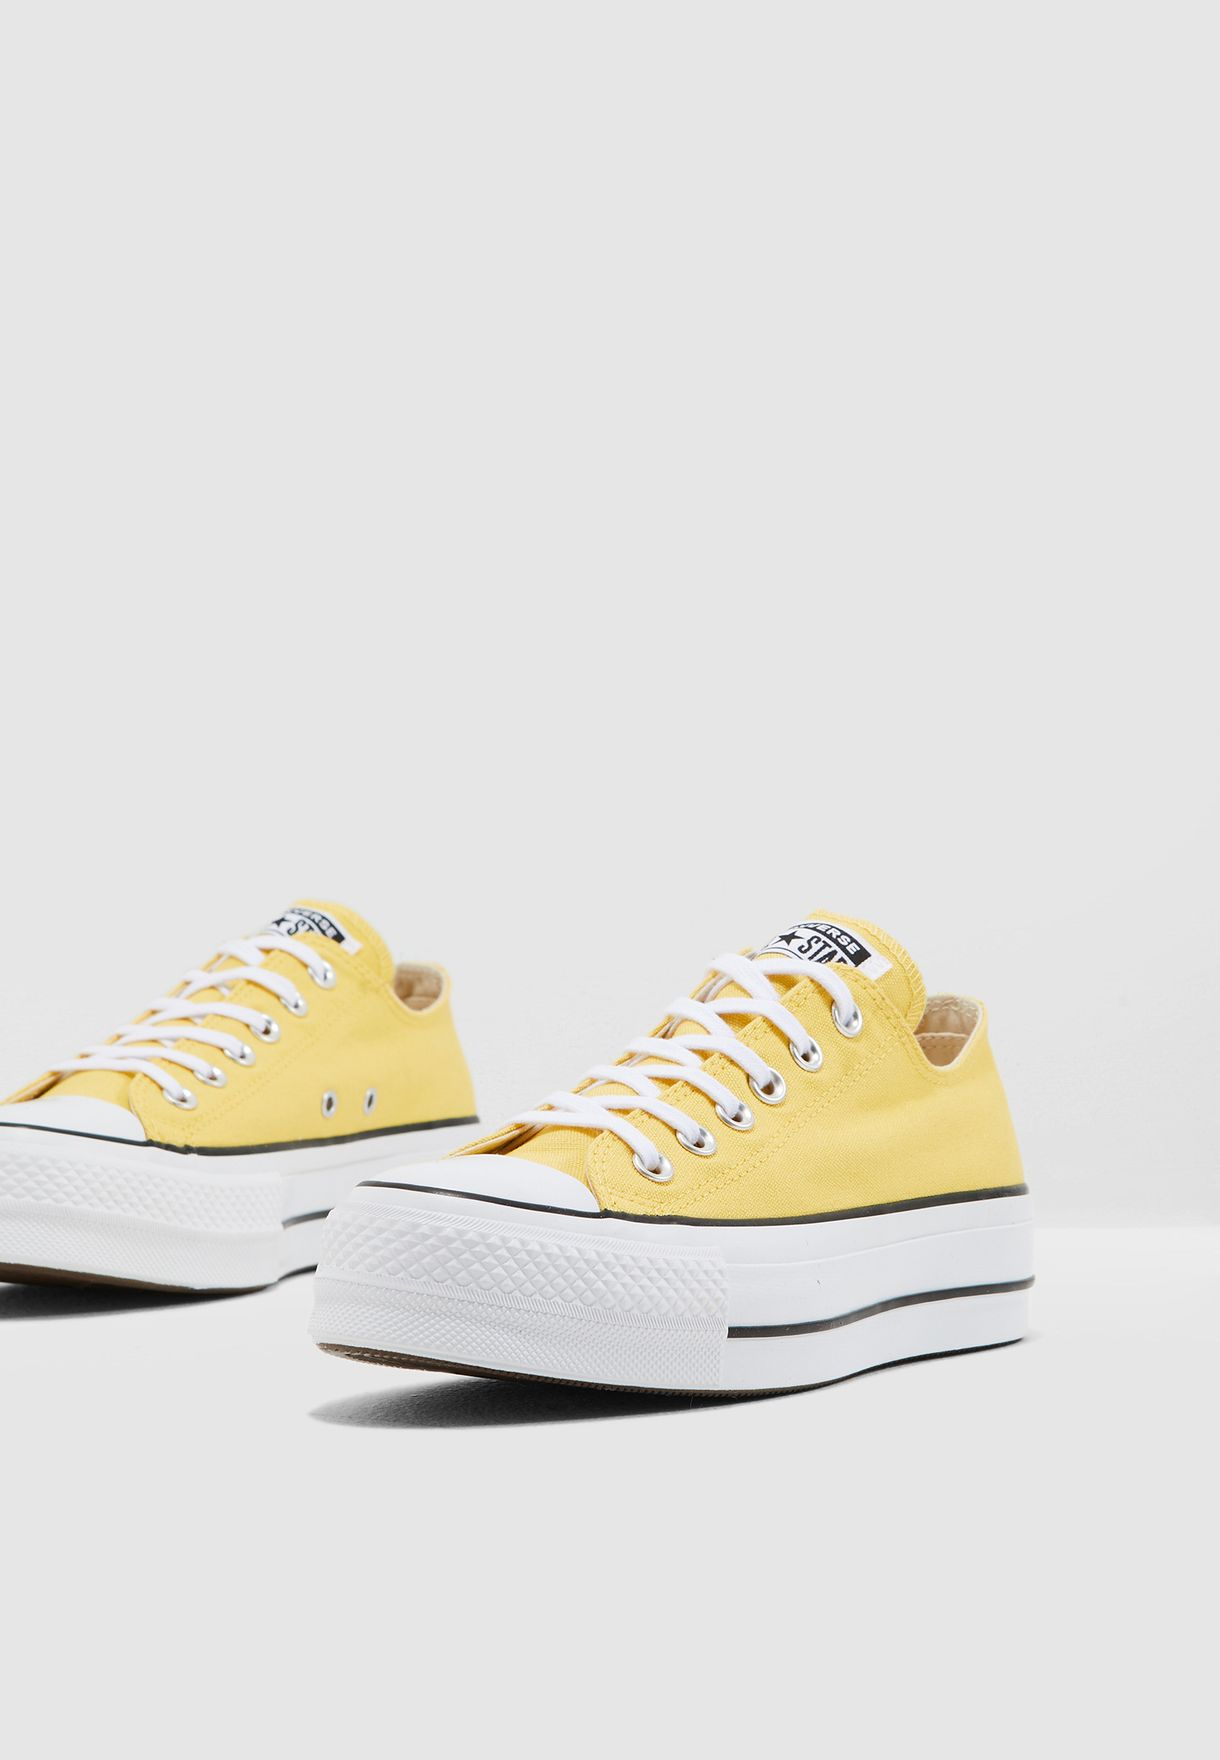 0a5f2460449092 Shop Converse yellow Chuck Taylor All Star Lift 564385C-740 for ...